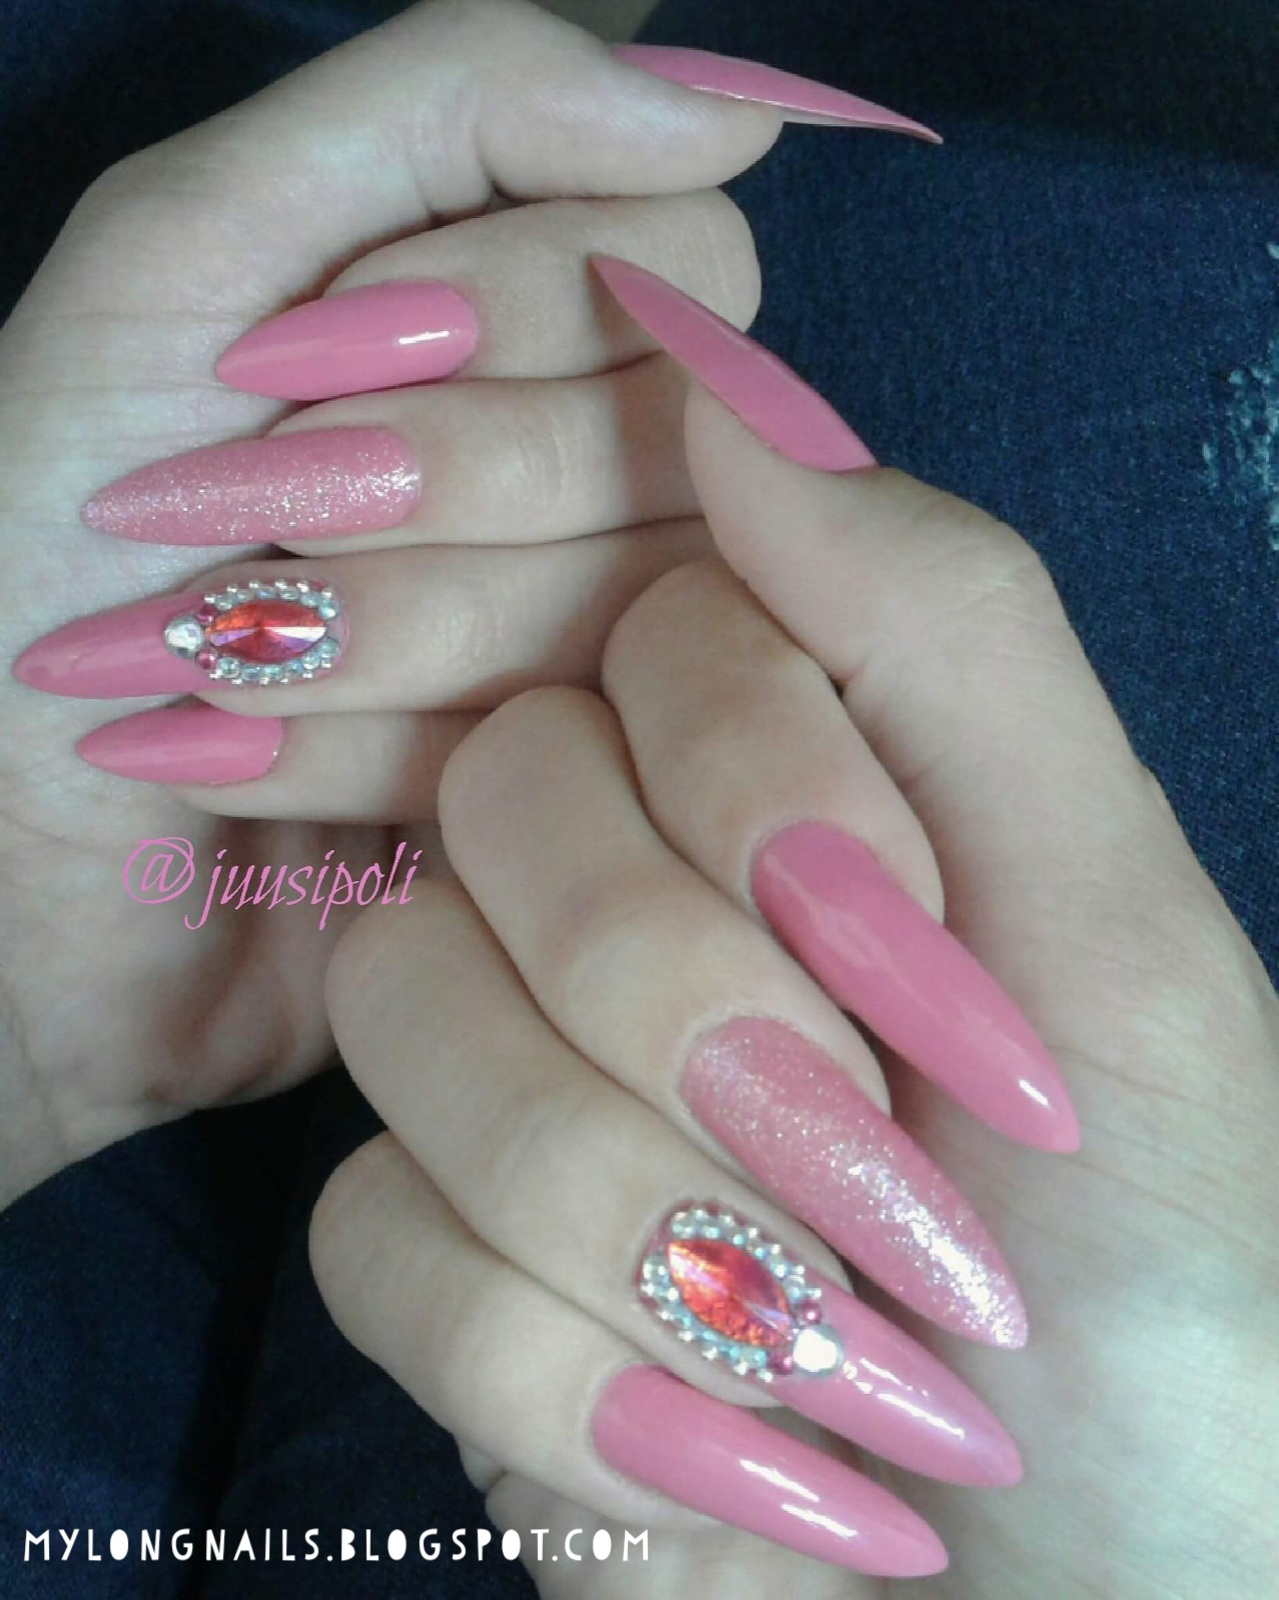 Long Nails: Julia\'s beautiful natural long nails - 2